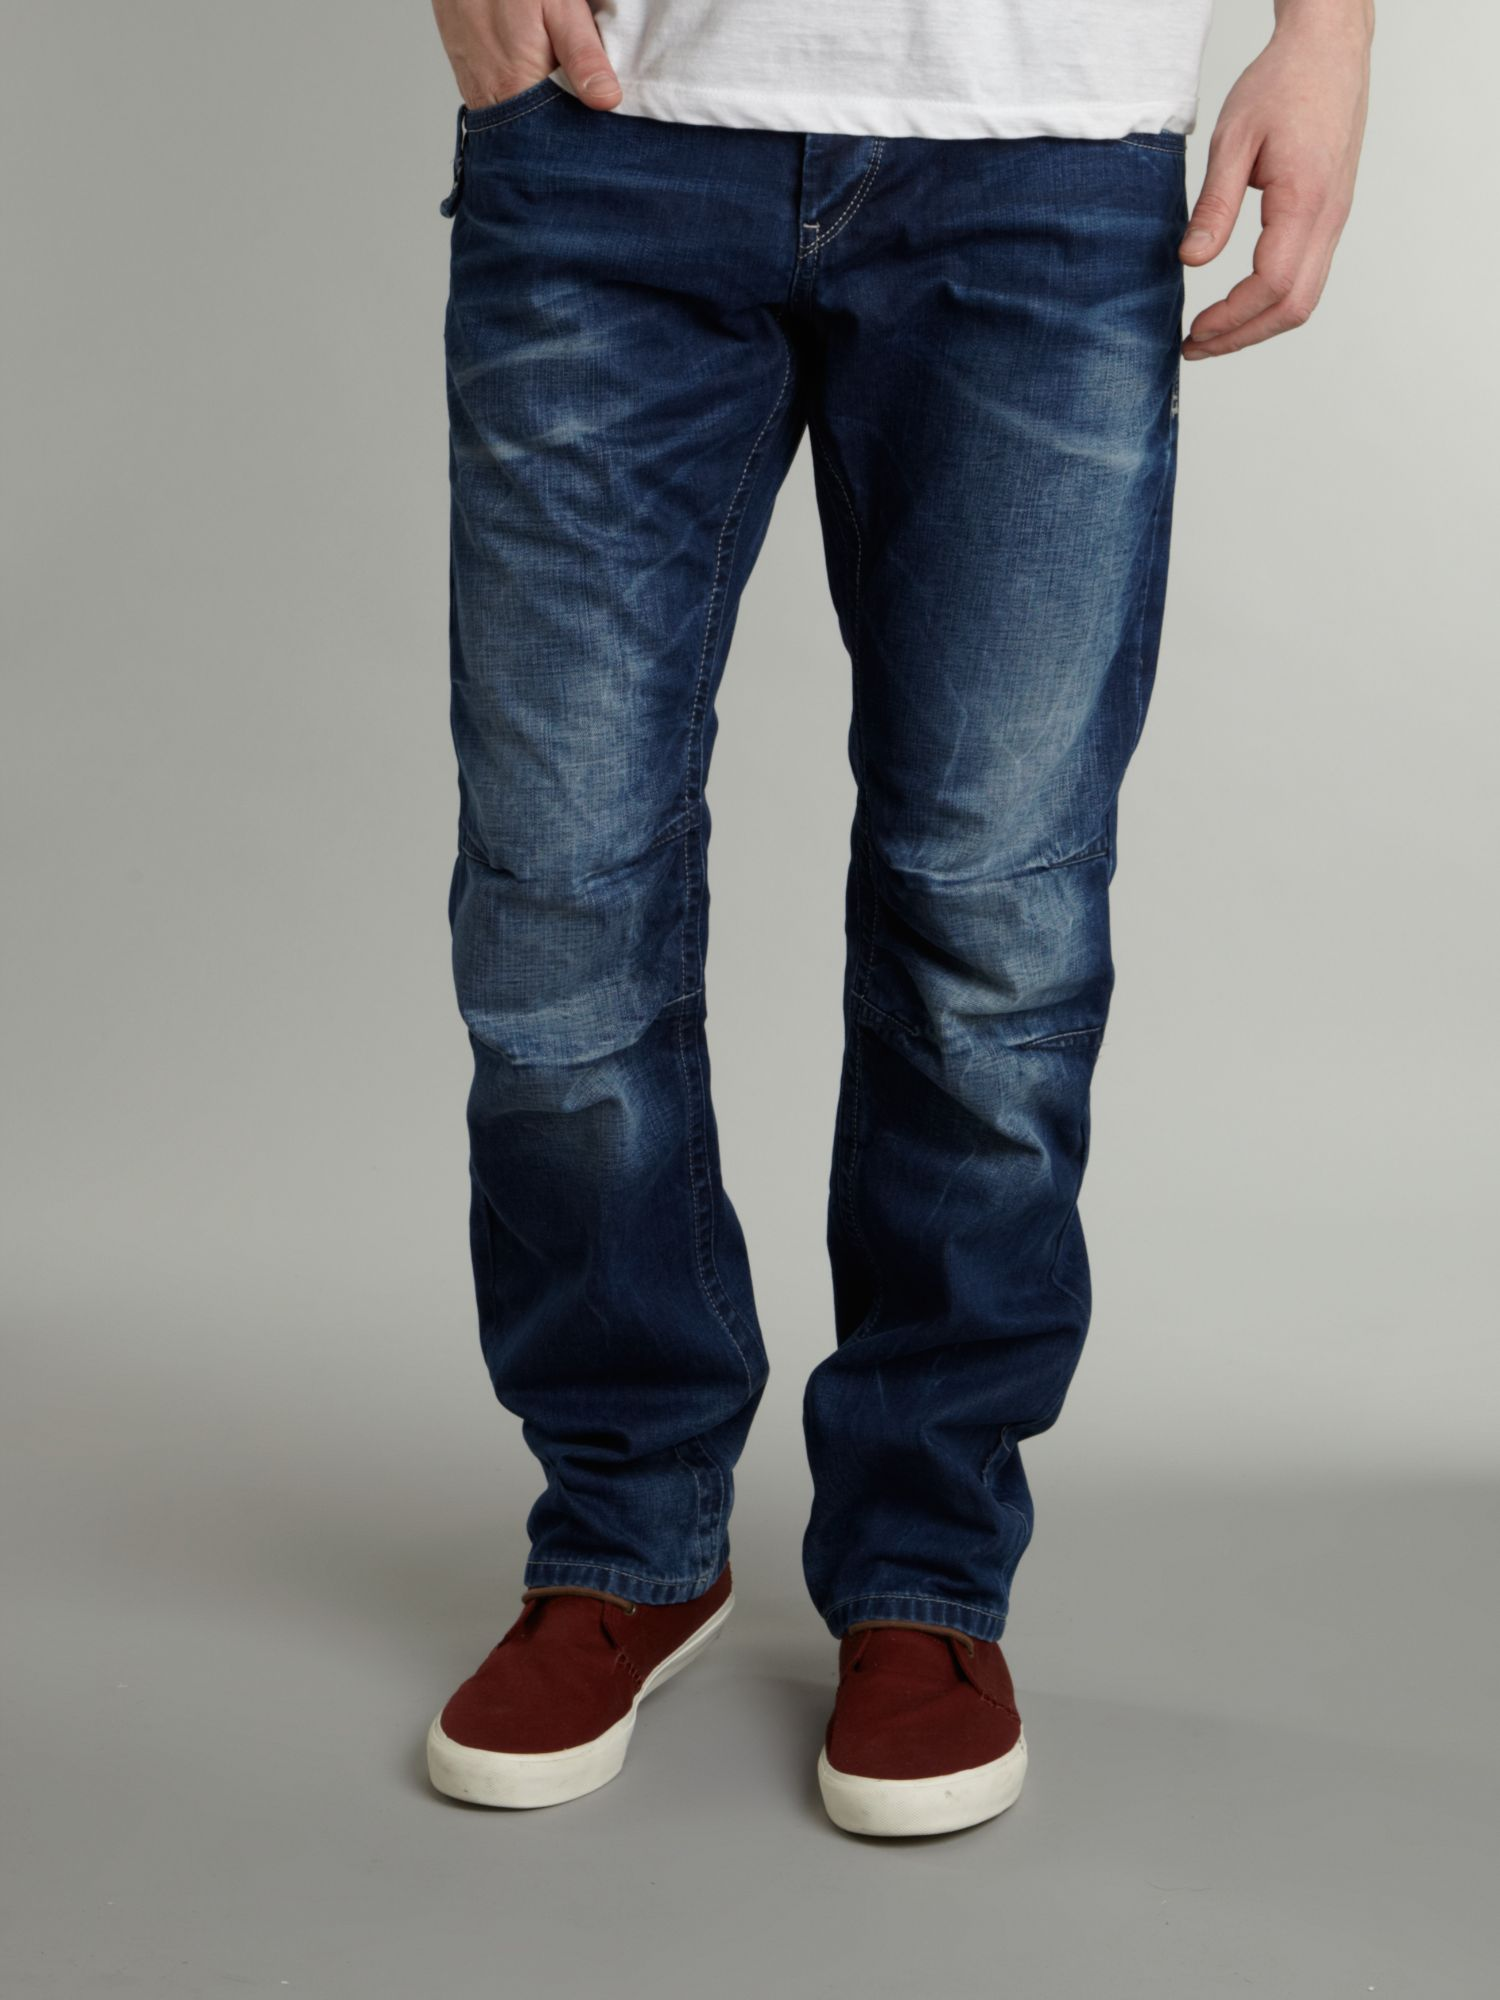 Boxy Powell JJ 668 loose fit jeans